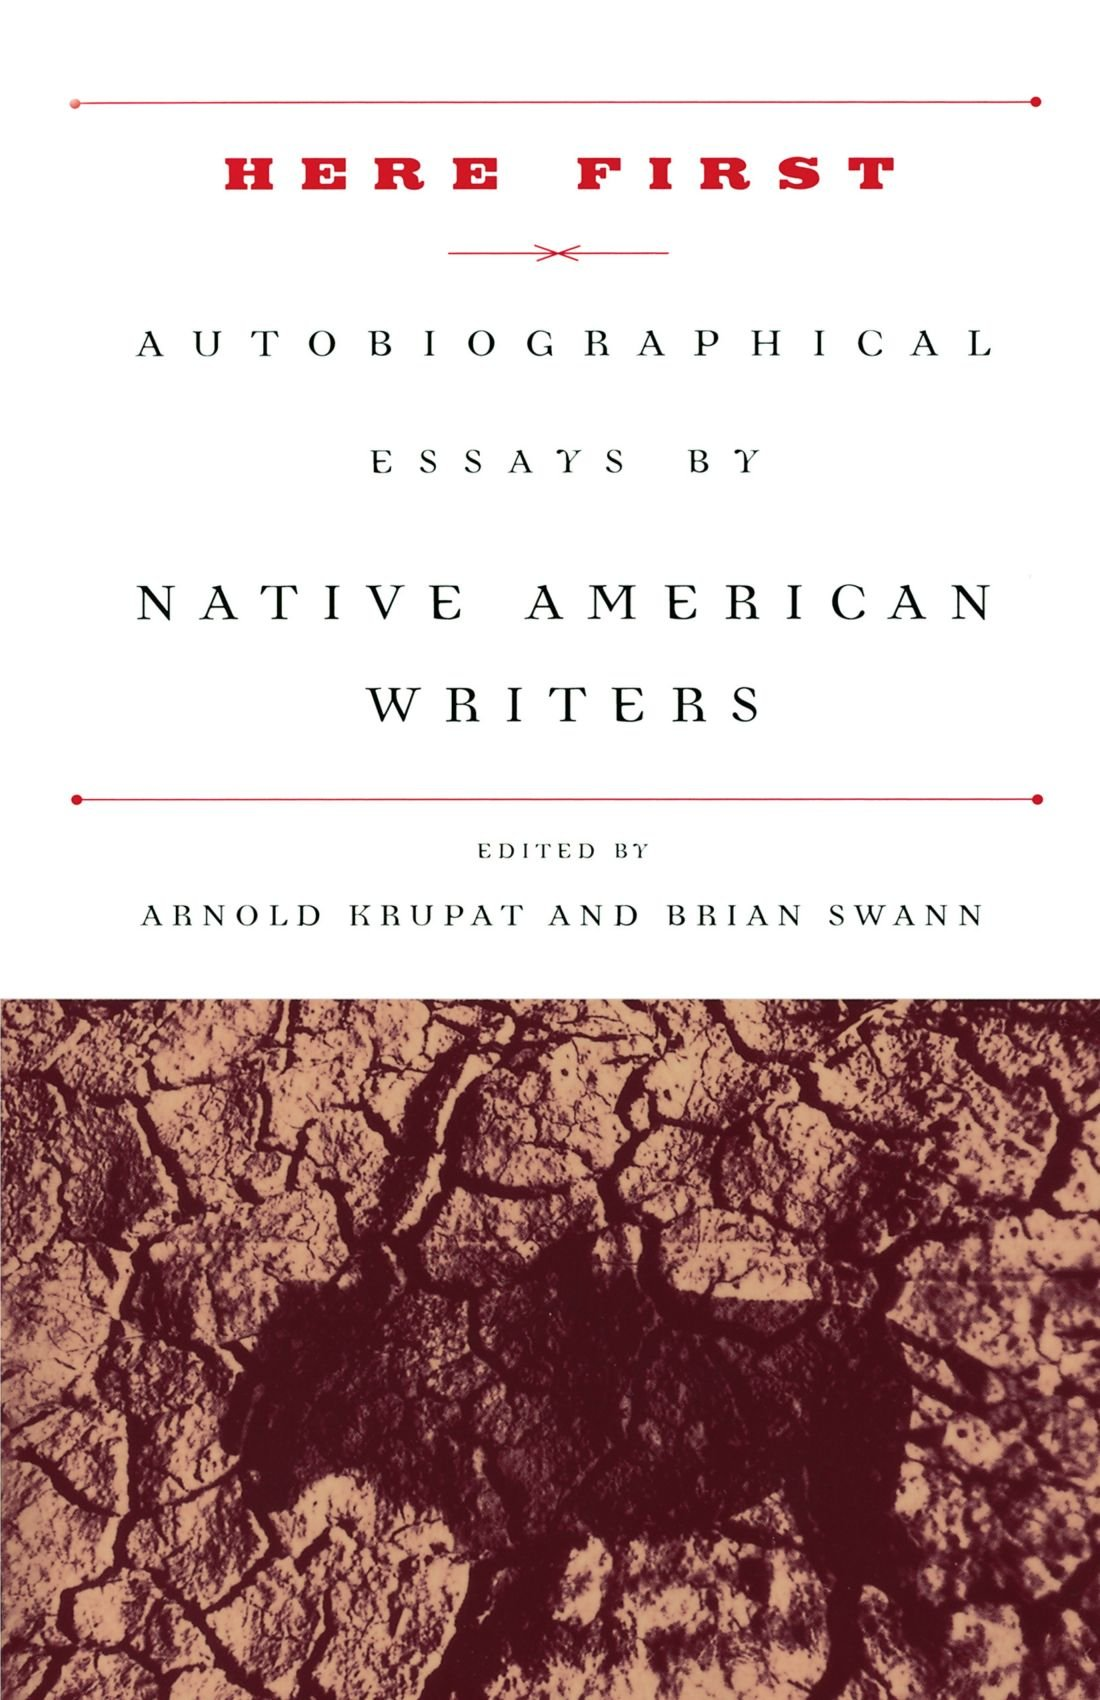 here first autobiographical essays by native american writers here first autobiographical essays by native american writers modern library paperbacks arnold krupat brian swann 9780375751387 com books